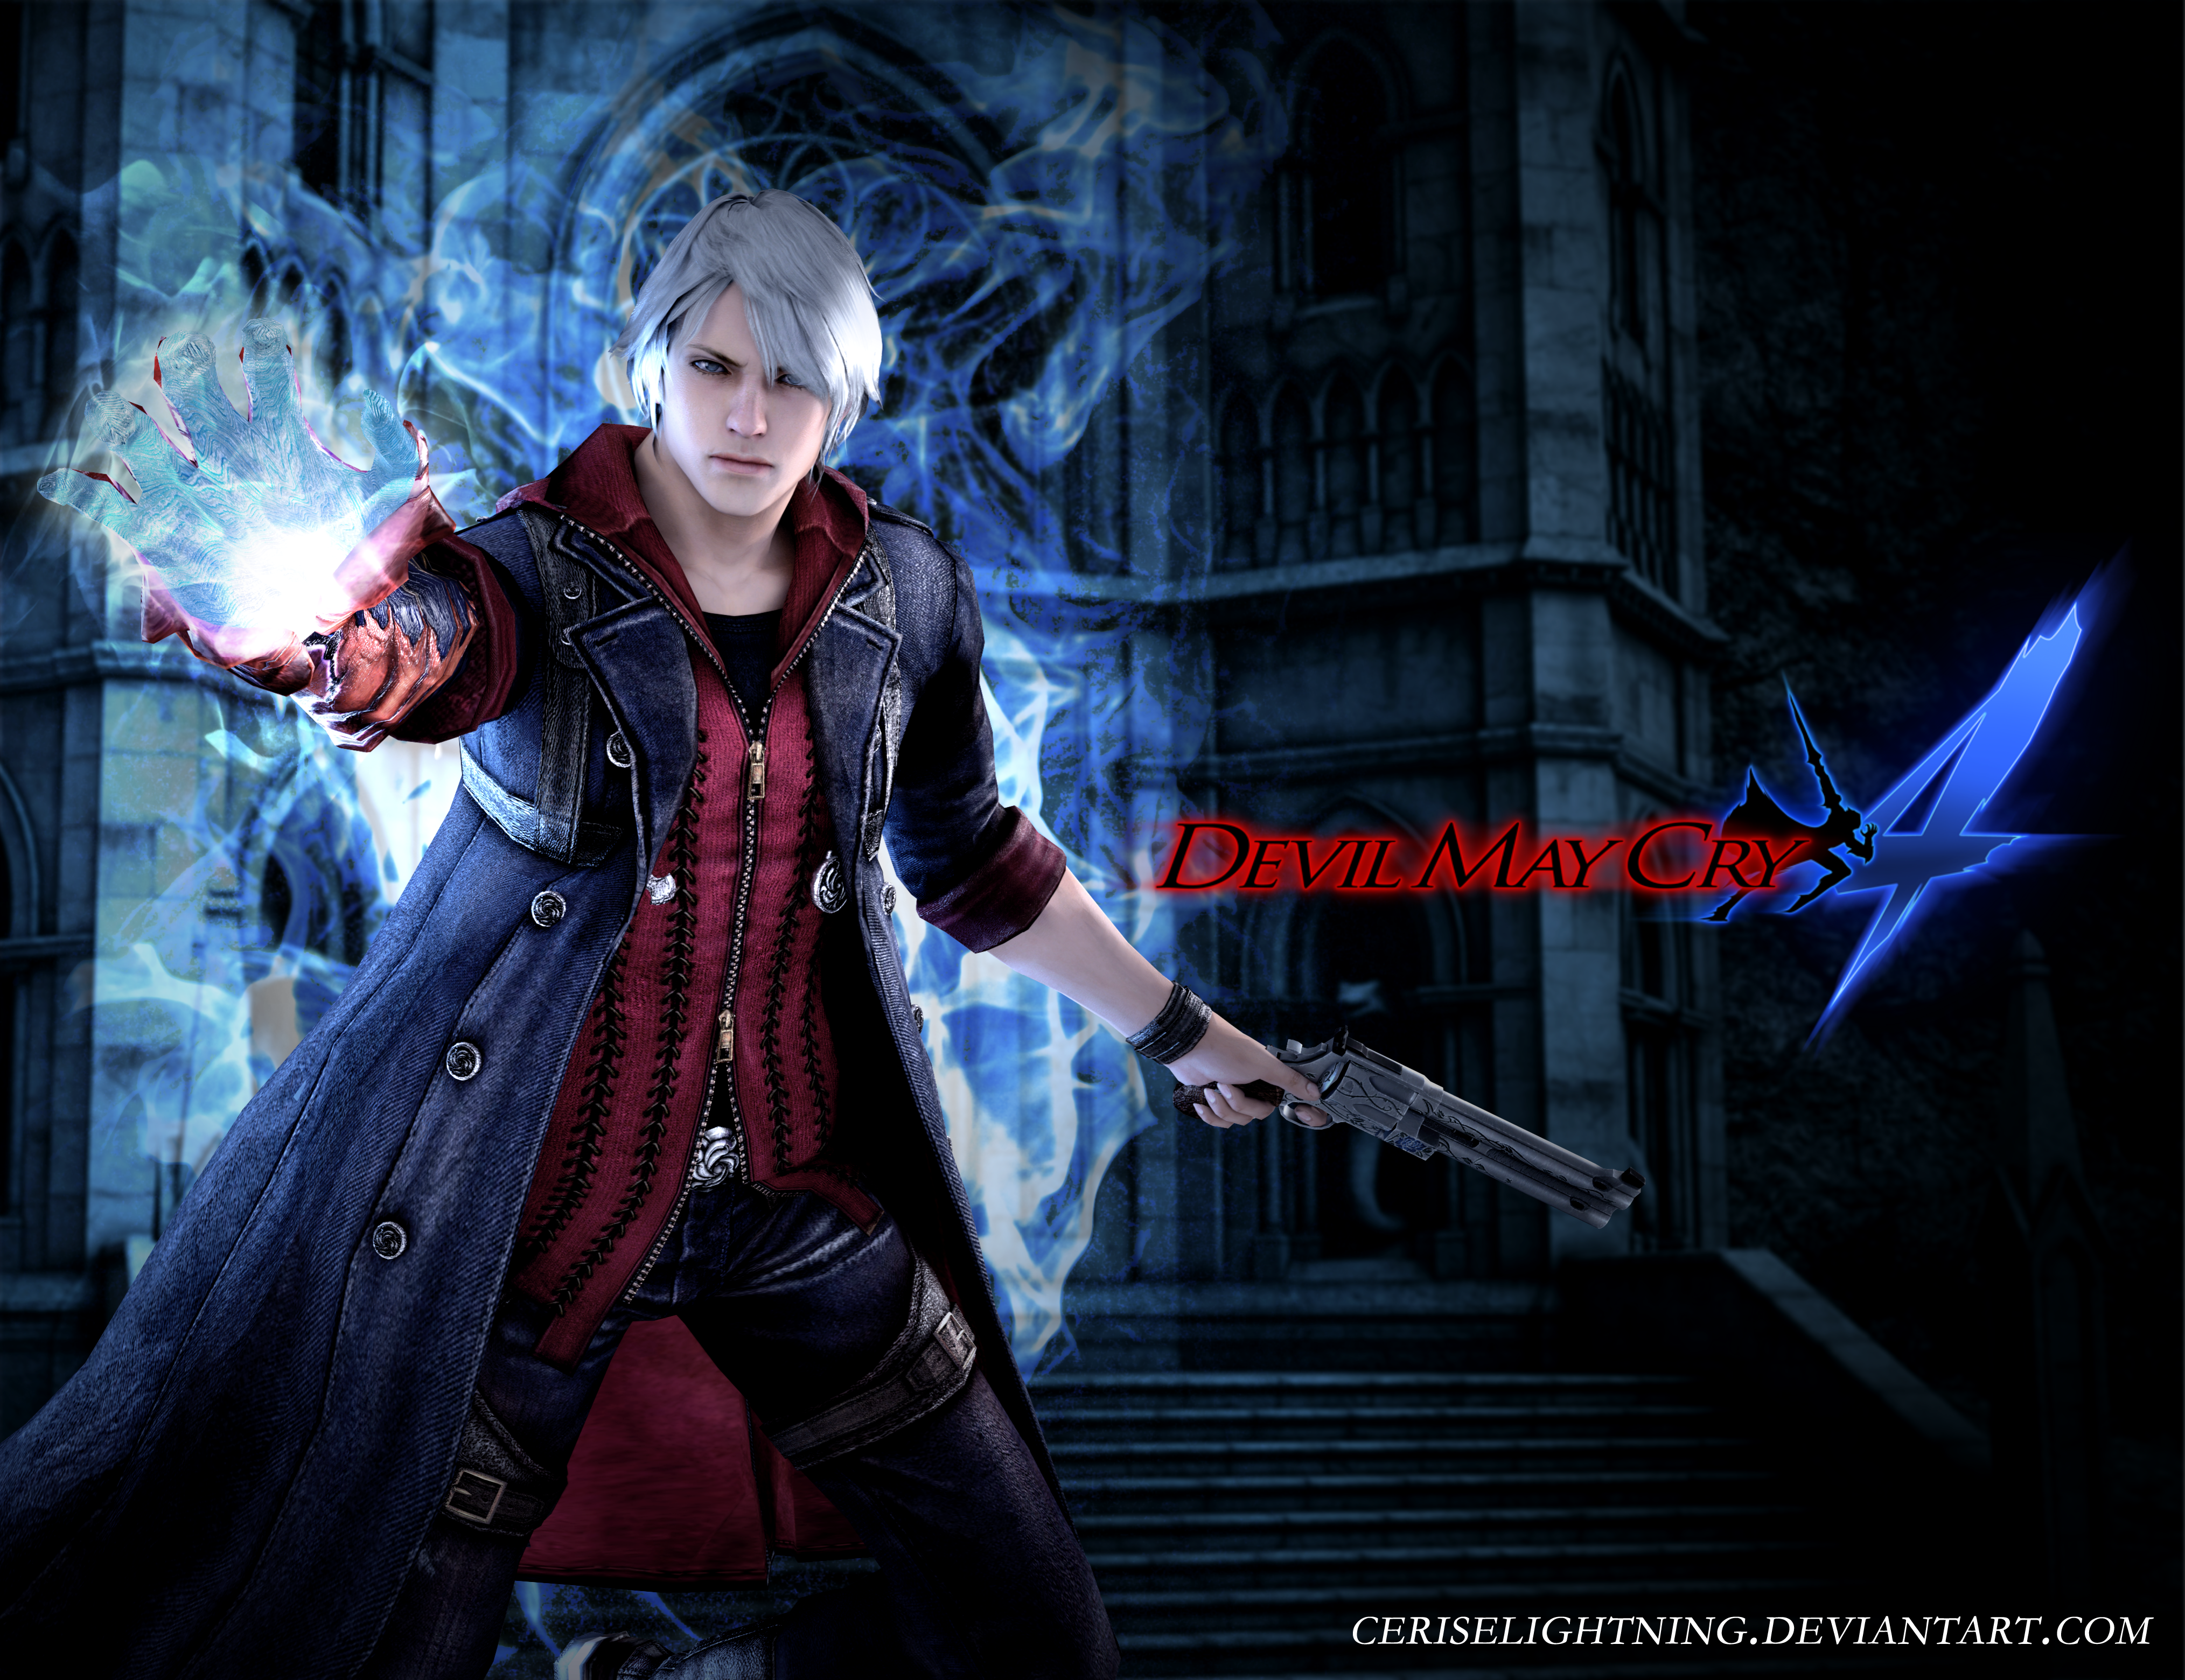 Fejozzz Media Devil May Cry 4 Special Edition Review